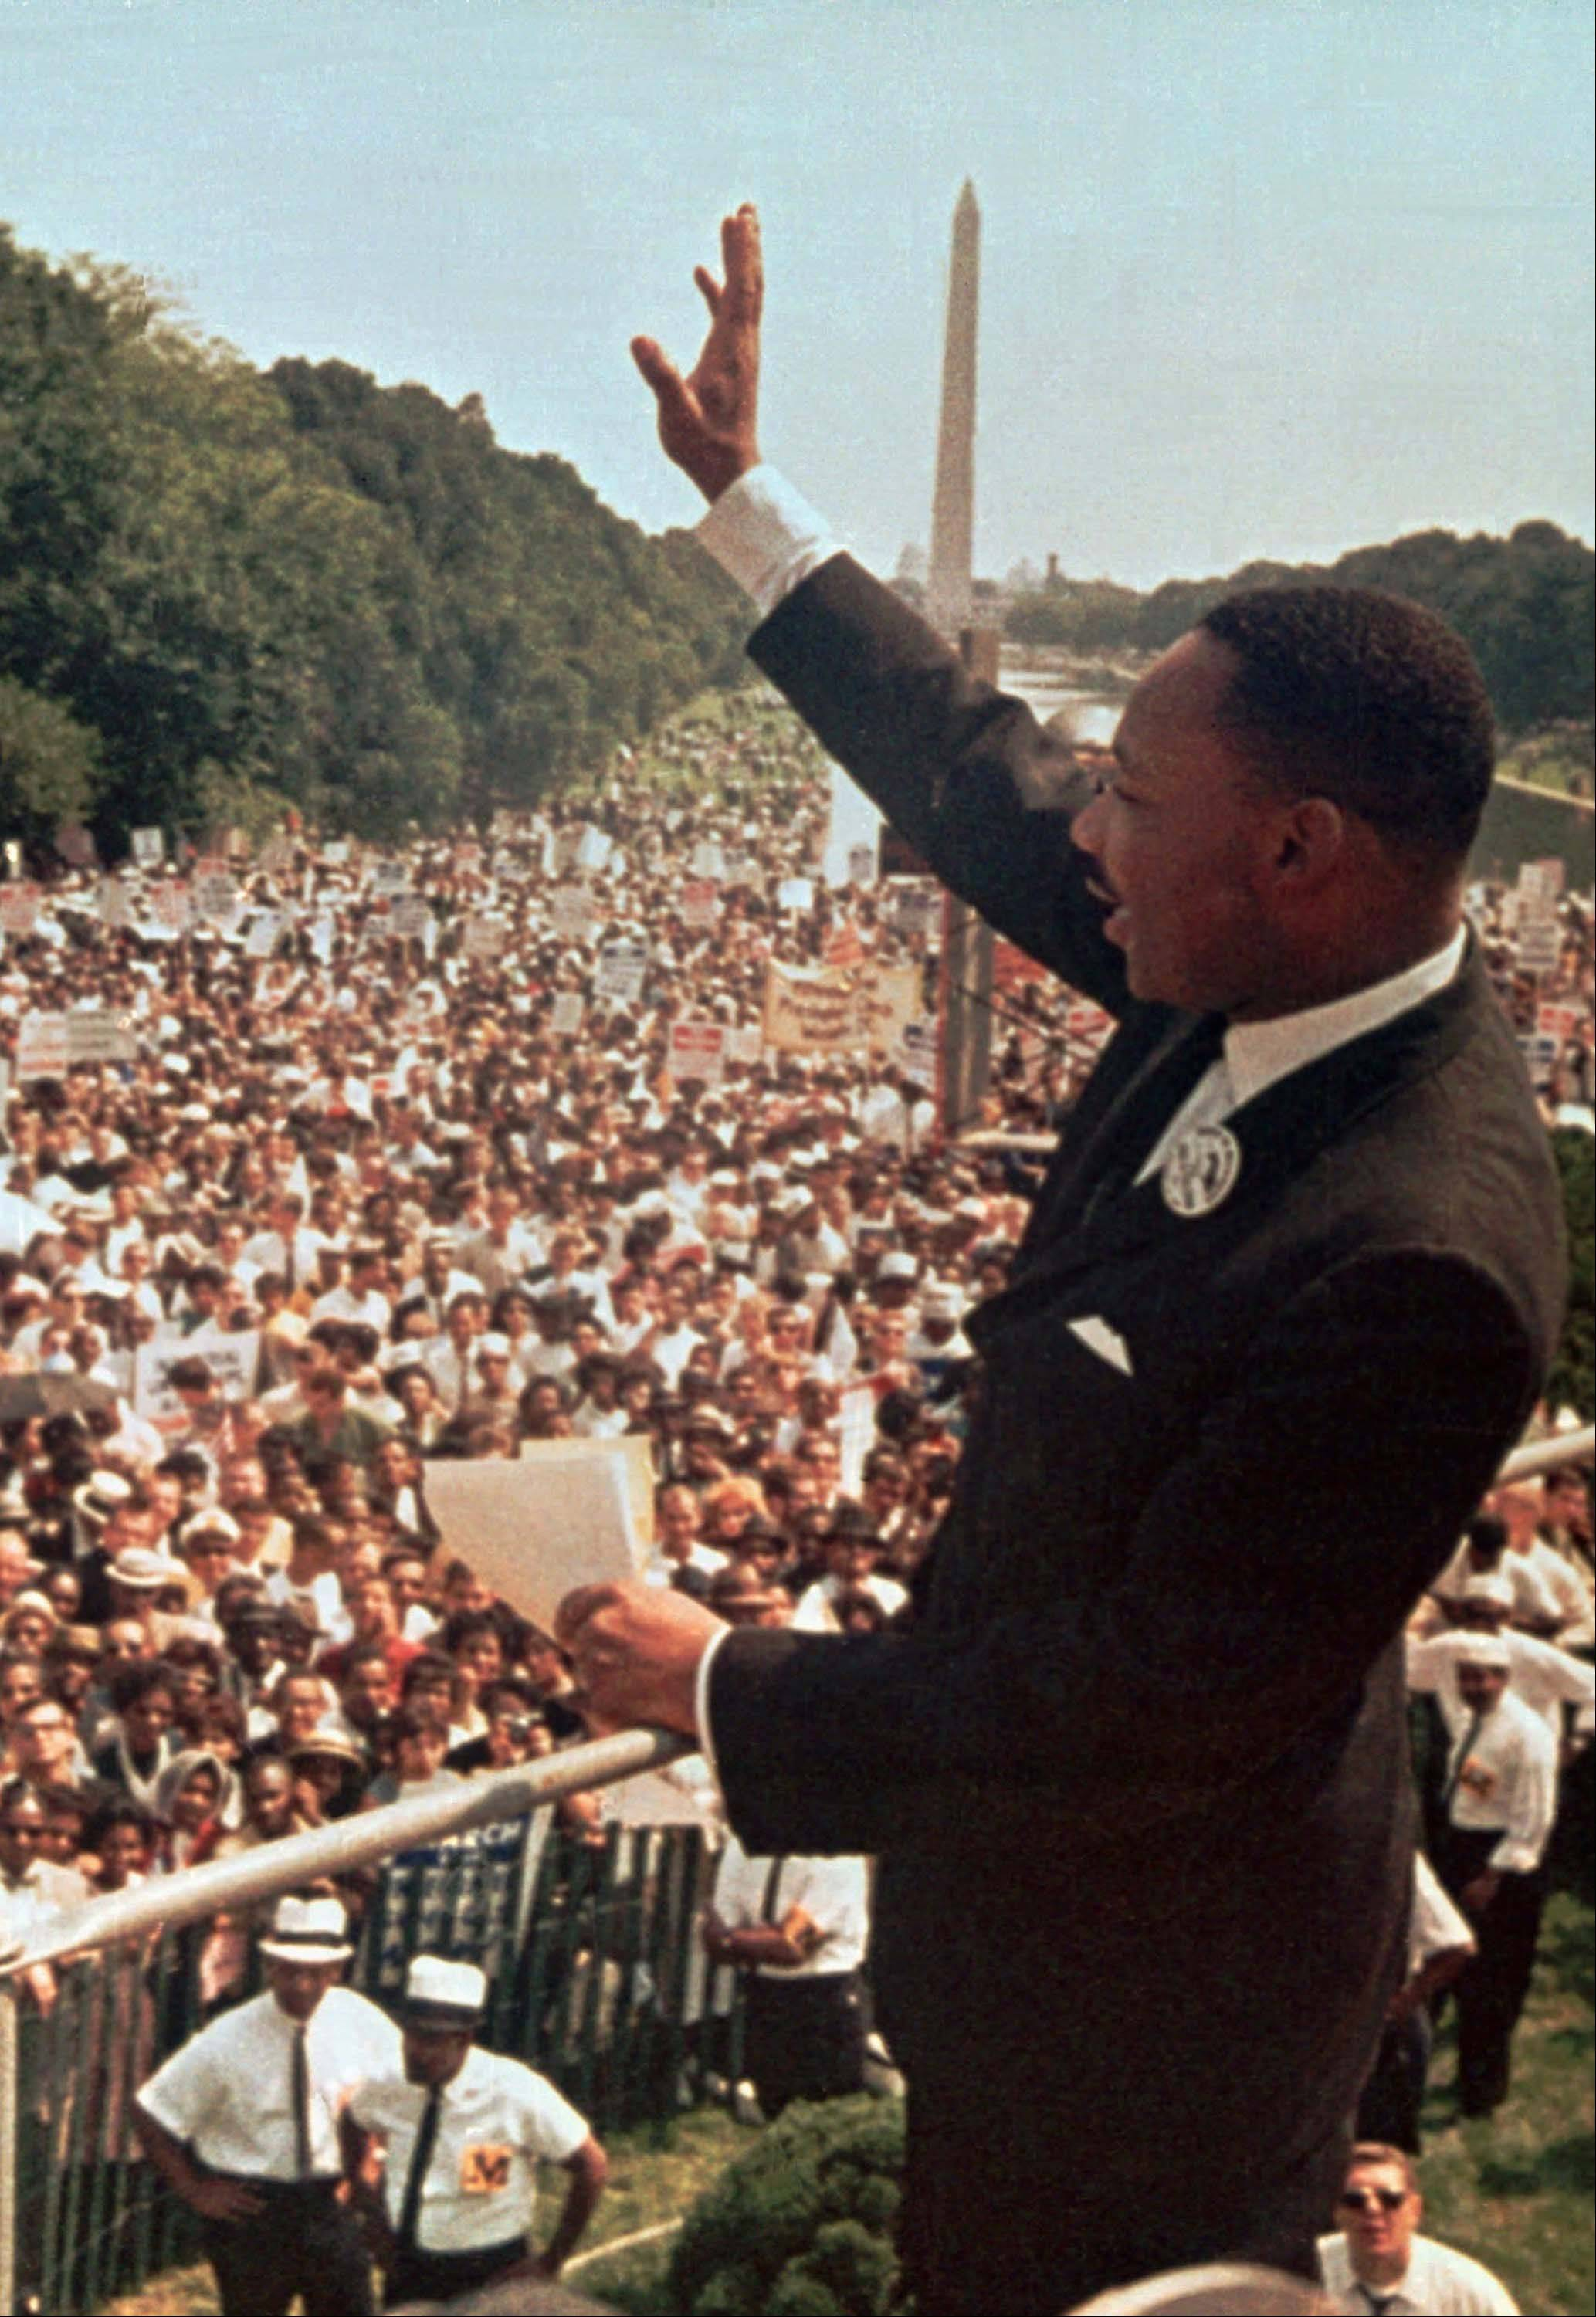 "The Rev. Martin Luther King Jr. acknowledges the crowd at the Lincoln Memorial for his ""I Have a Dream"" speech during the March on Washington, D.C., on Aug. 28, 1963. The march was organized to support proposed civil rights legislation and end segregation. King founded the Southern Christian Leadership Conference in 1957, advocating nonviolent action against America's racial inequality."